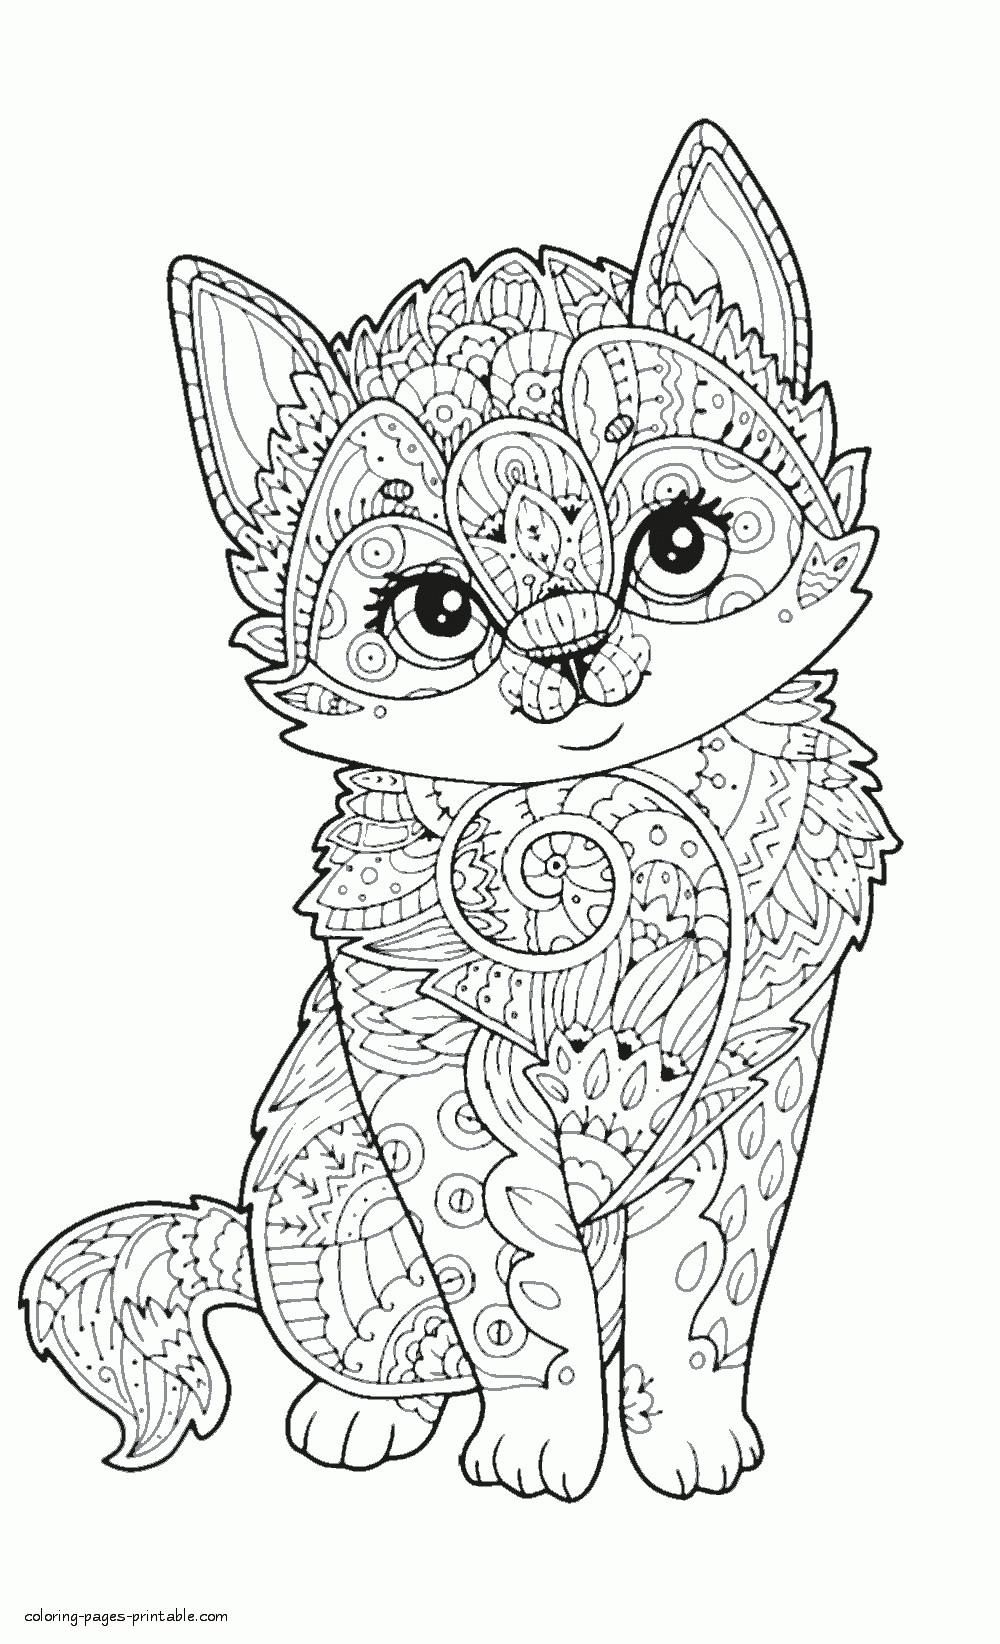 Free Printable Animal Coloring Pages For Adults in 2020 ...